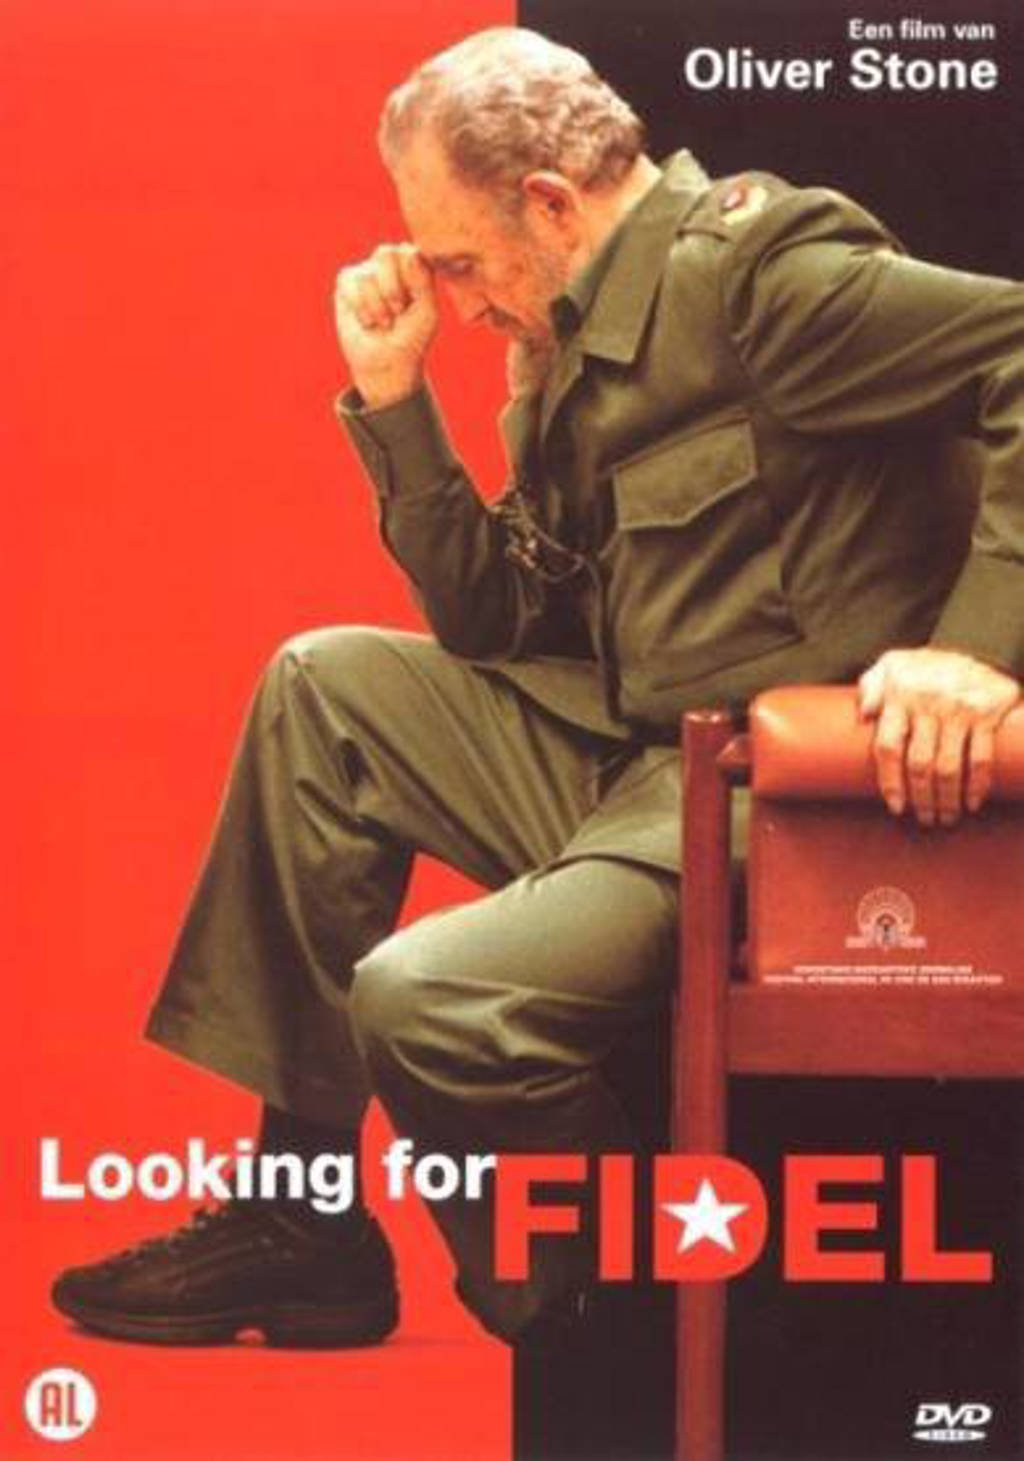 Looking for Fidel (DVD)